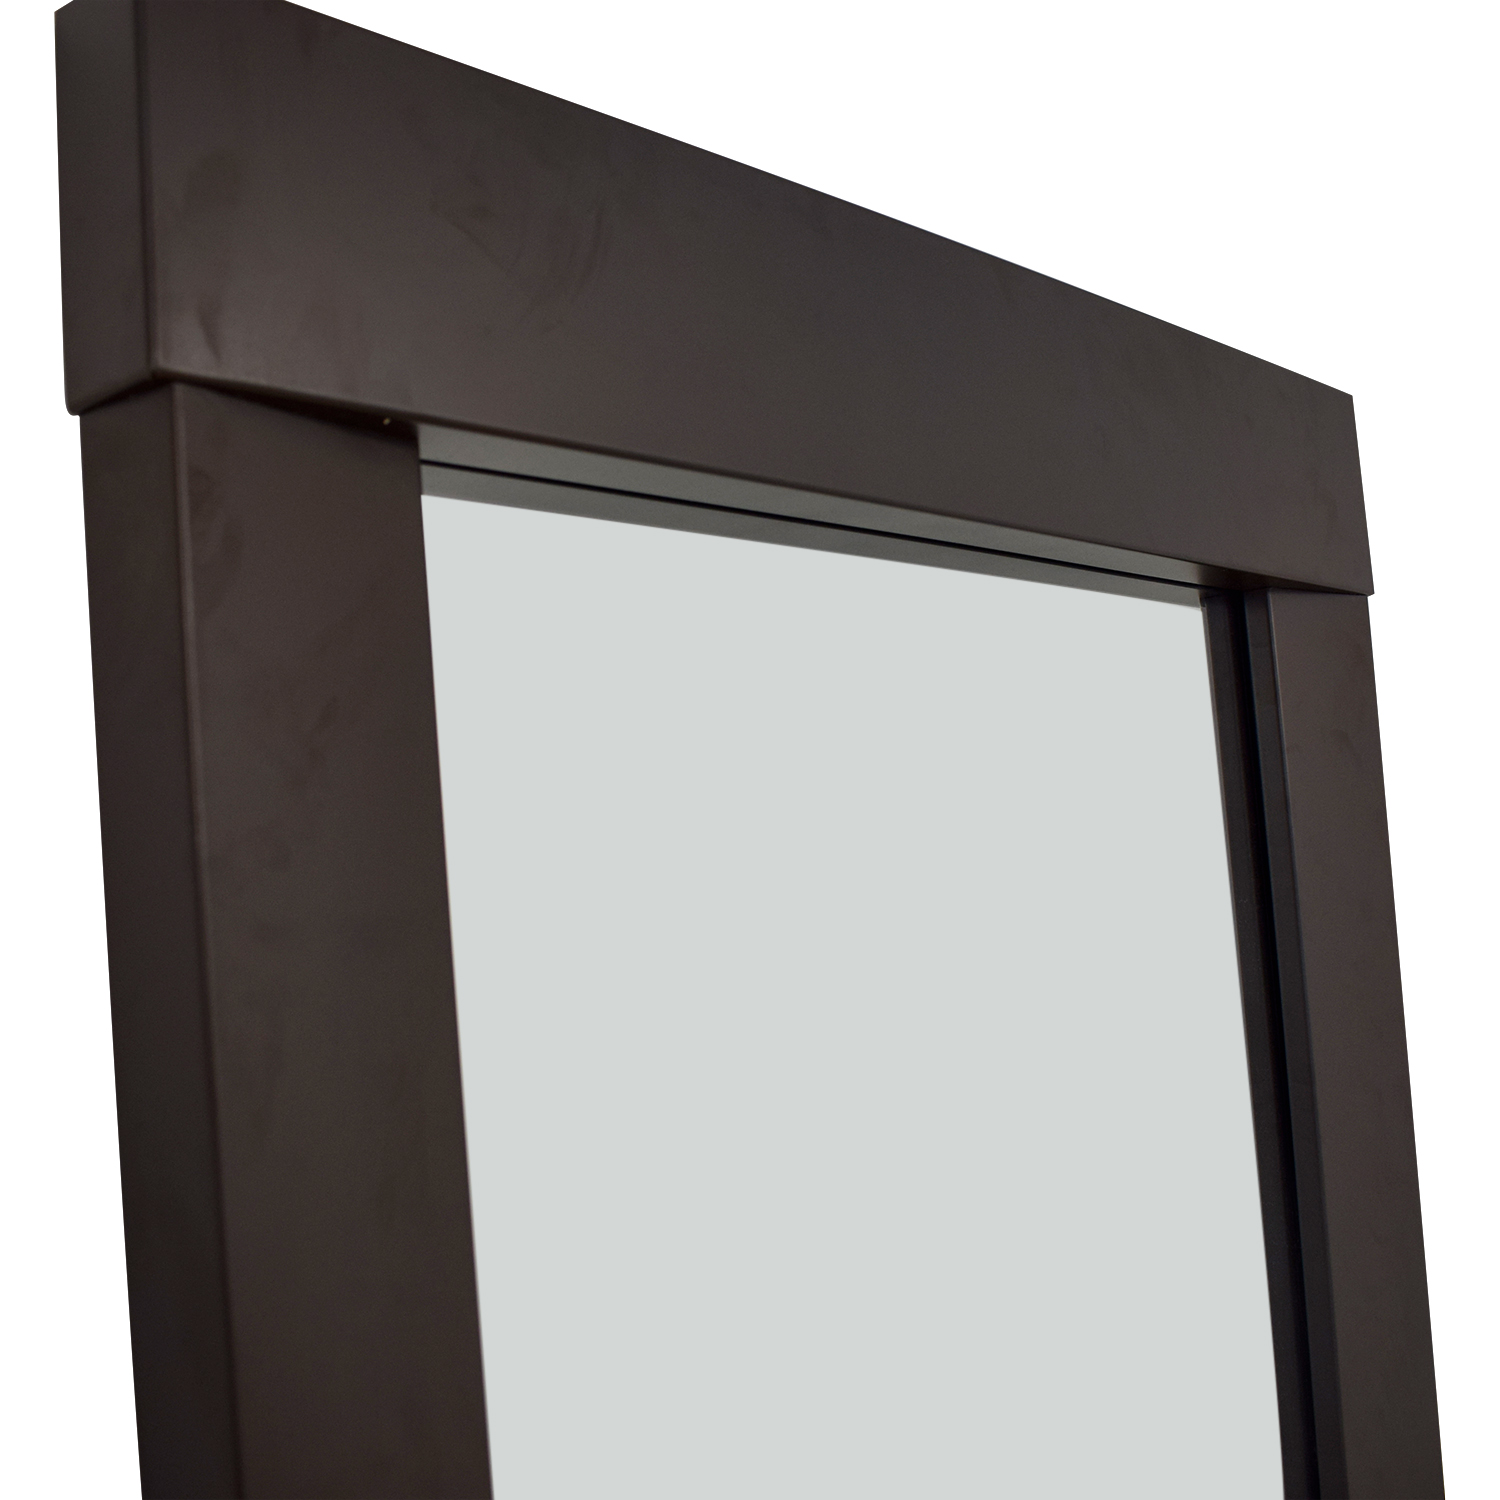 Crate And Barrel Floor Mirror Gallery - home furniture designs pictures